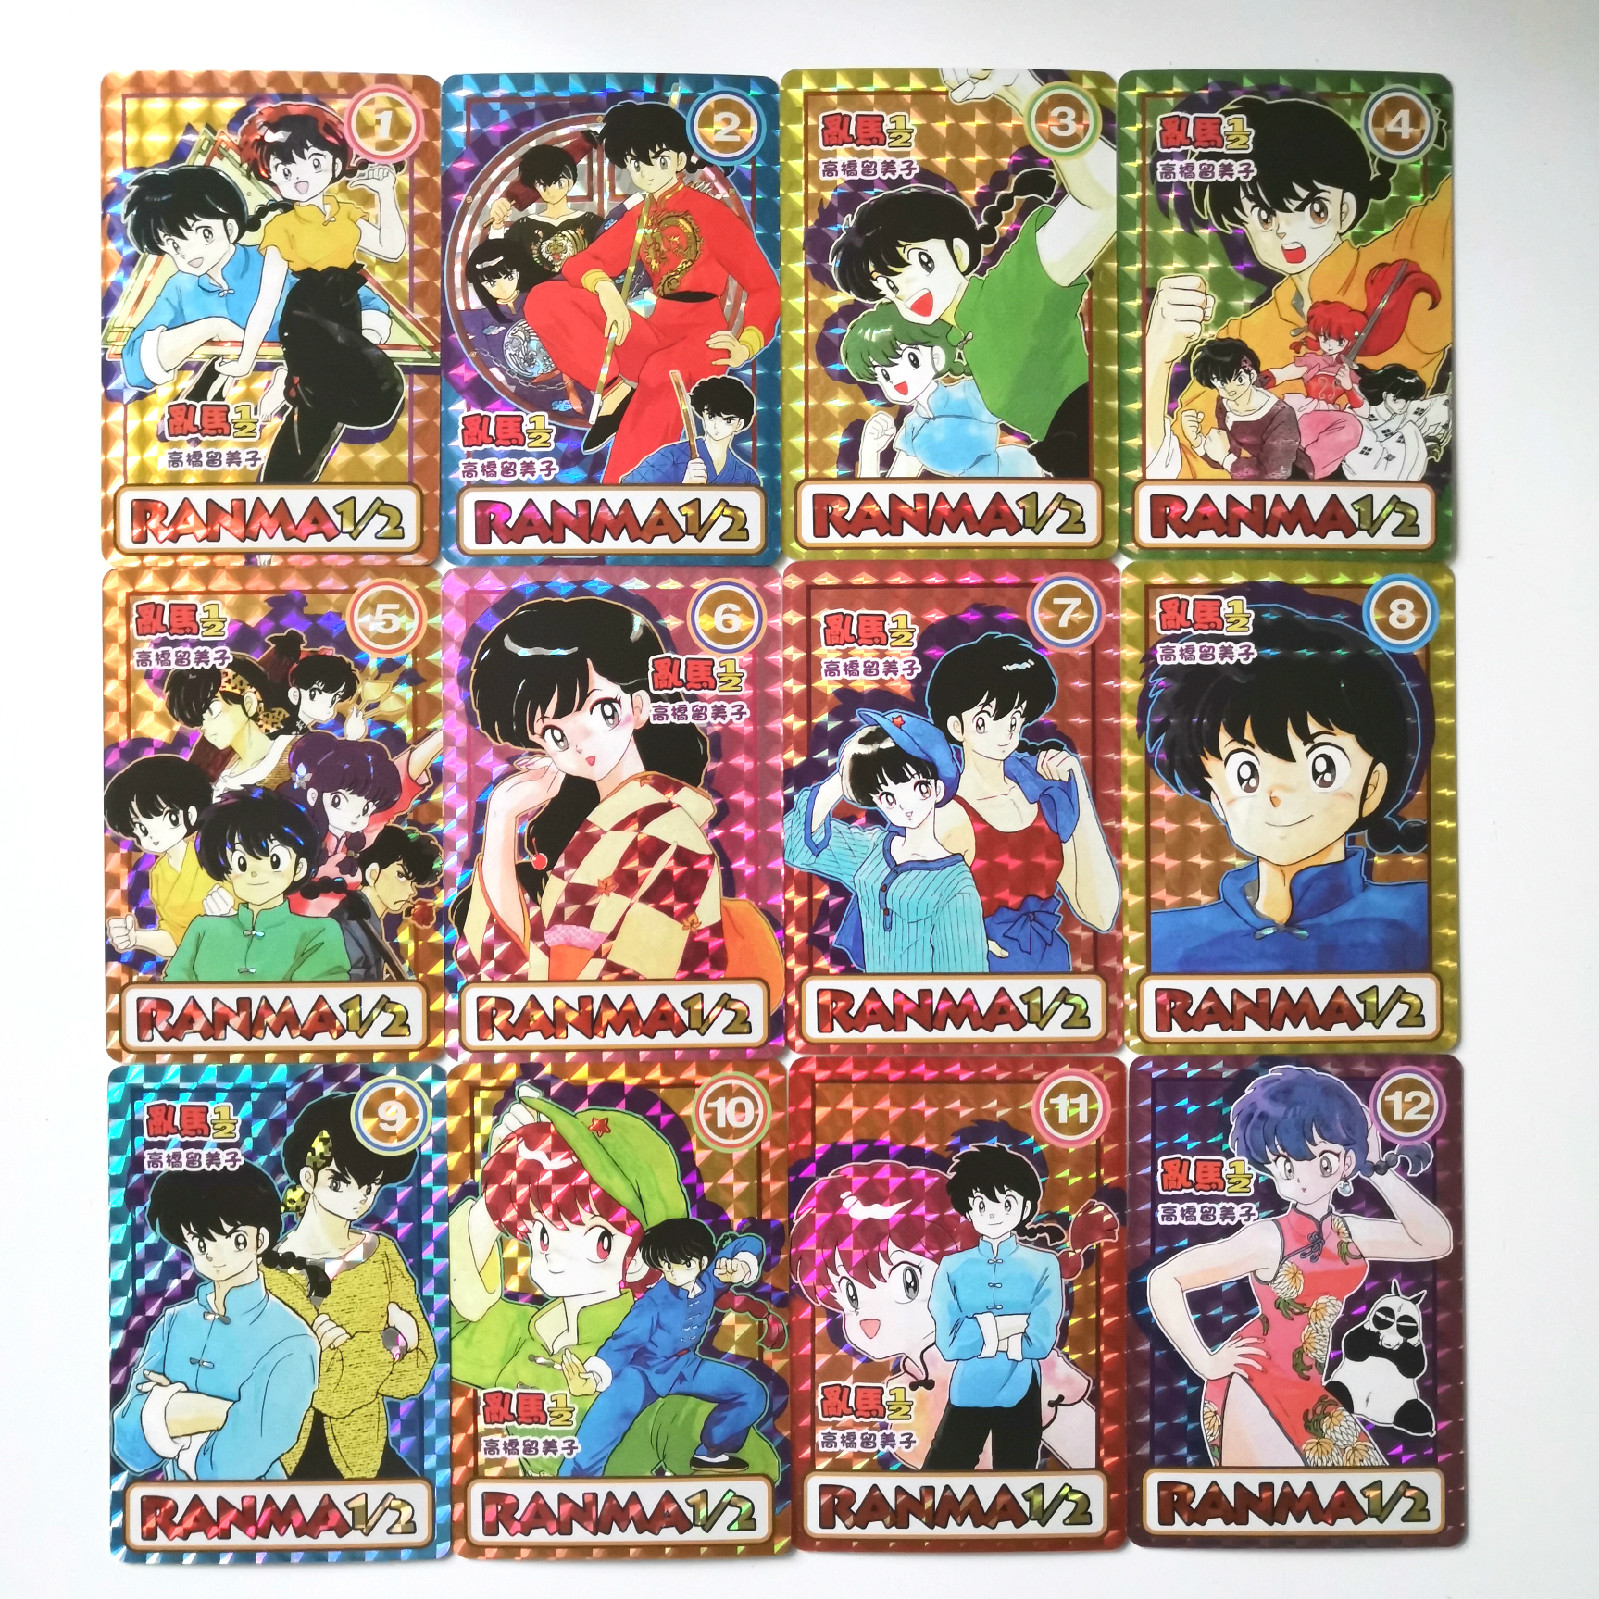 12pcs/set Ranma 1/2 Imitation full version oys Hobbies Hobby Collectibles Game Collection Anime Cards